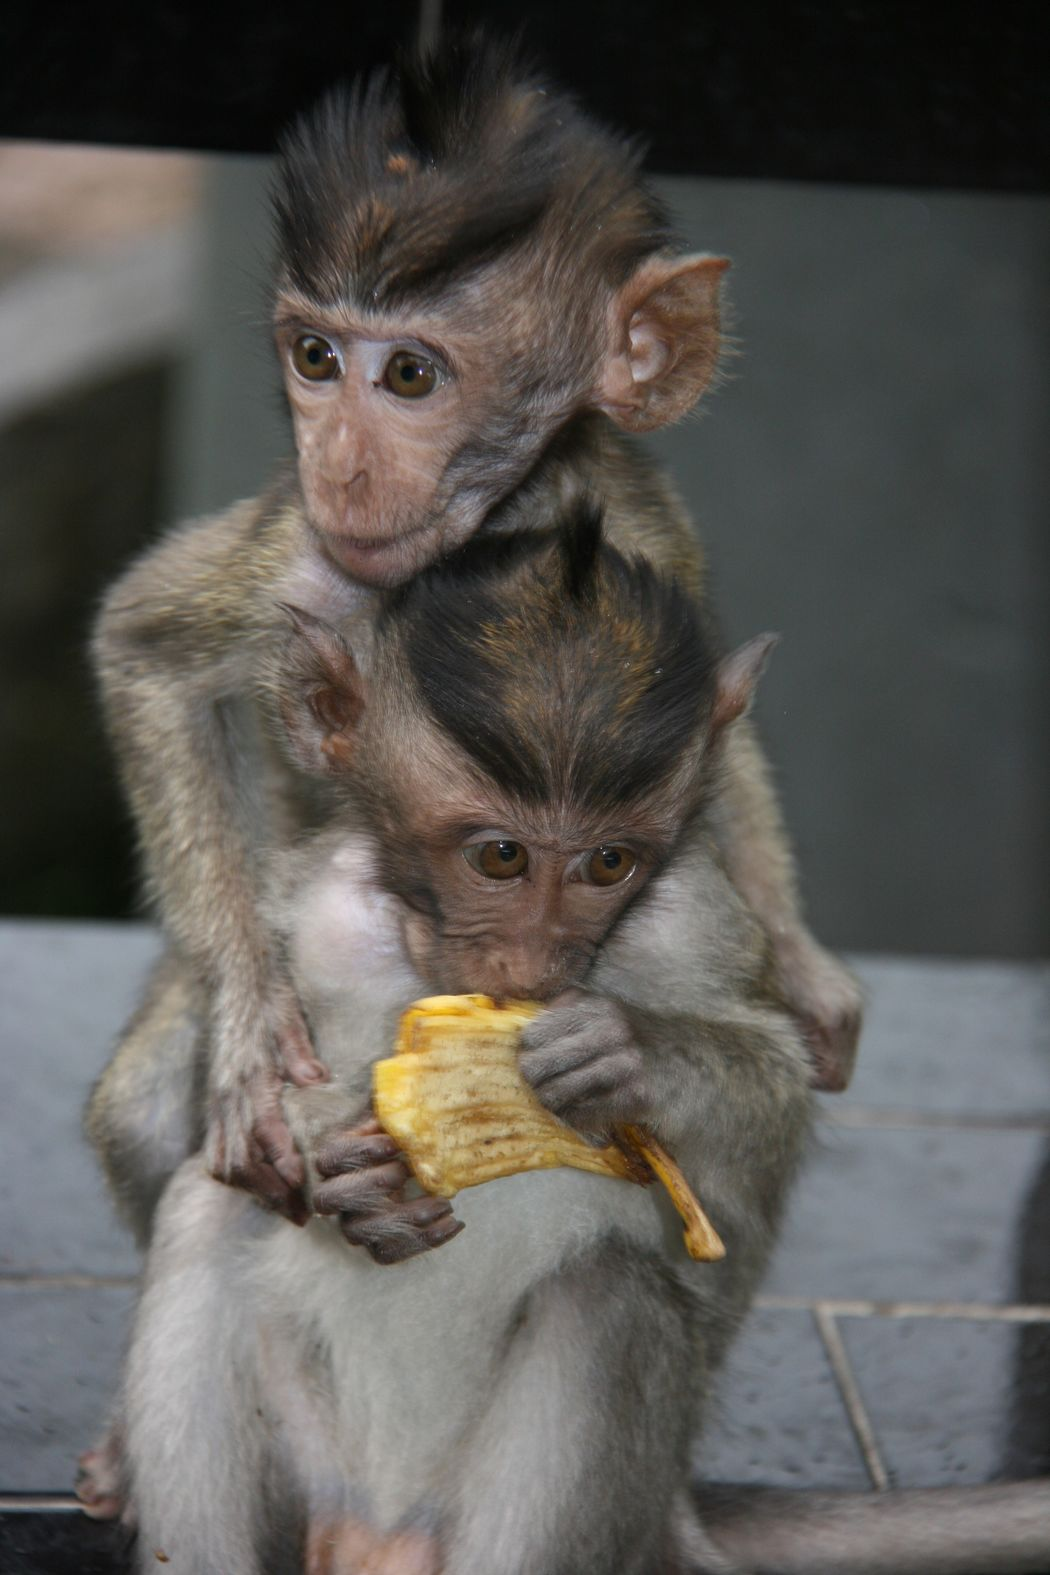 EyeEm Selects Eating Monkeys Little Monkeys Baby Monkeys Playtime No People Animals In The Wild Let's Go. Together.